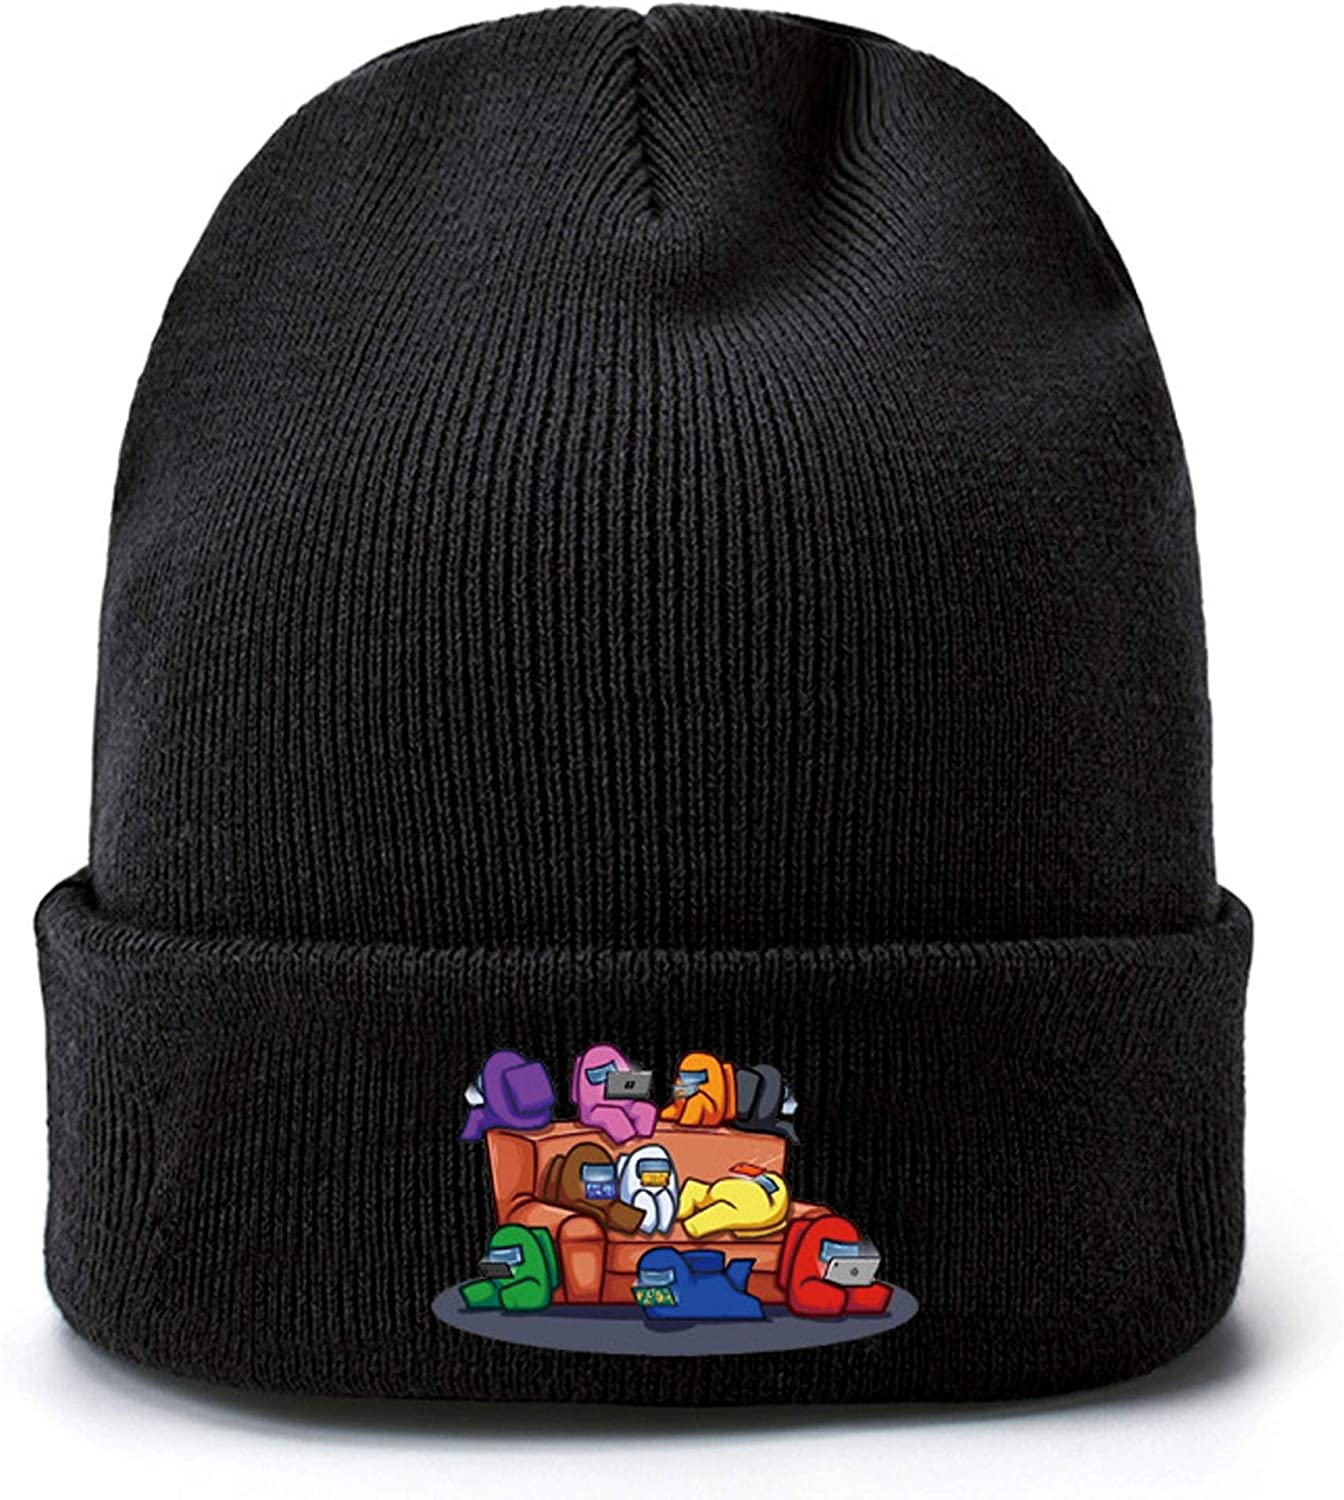 Among Us Crewmate Beanie Knit Hat-Imposter Game Unisex Adult Kids Skully Cap